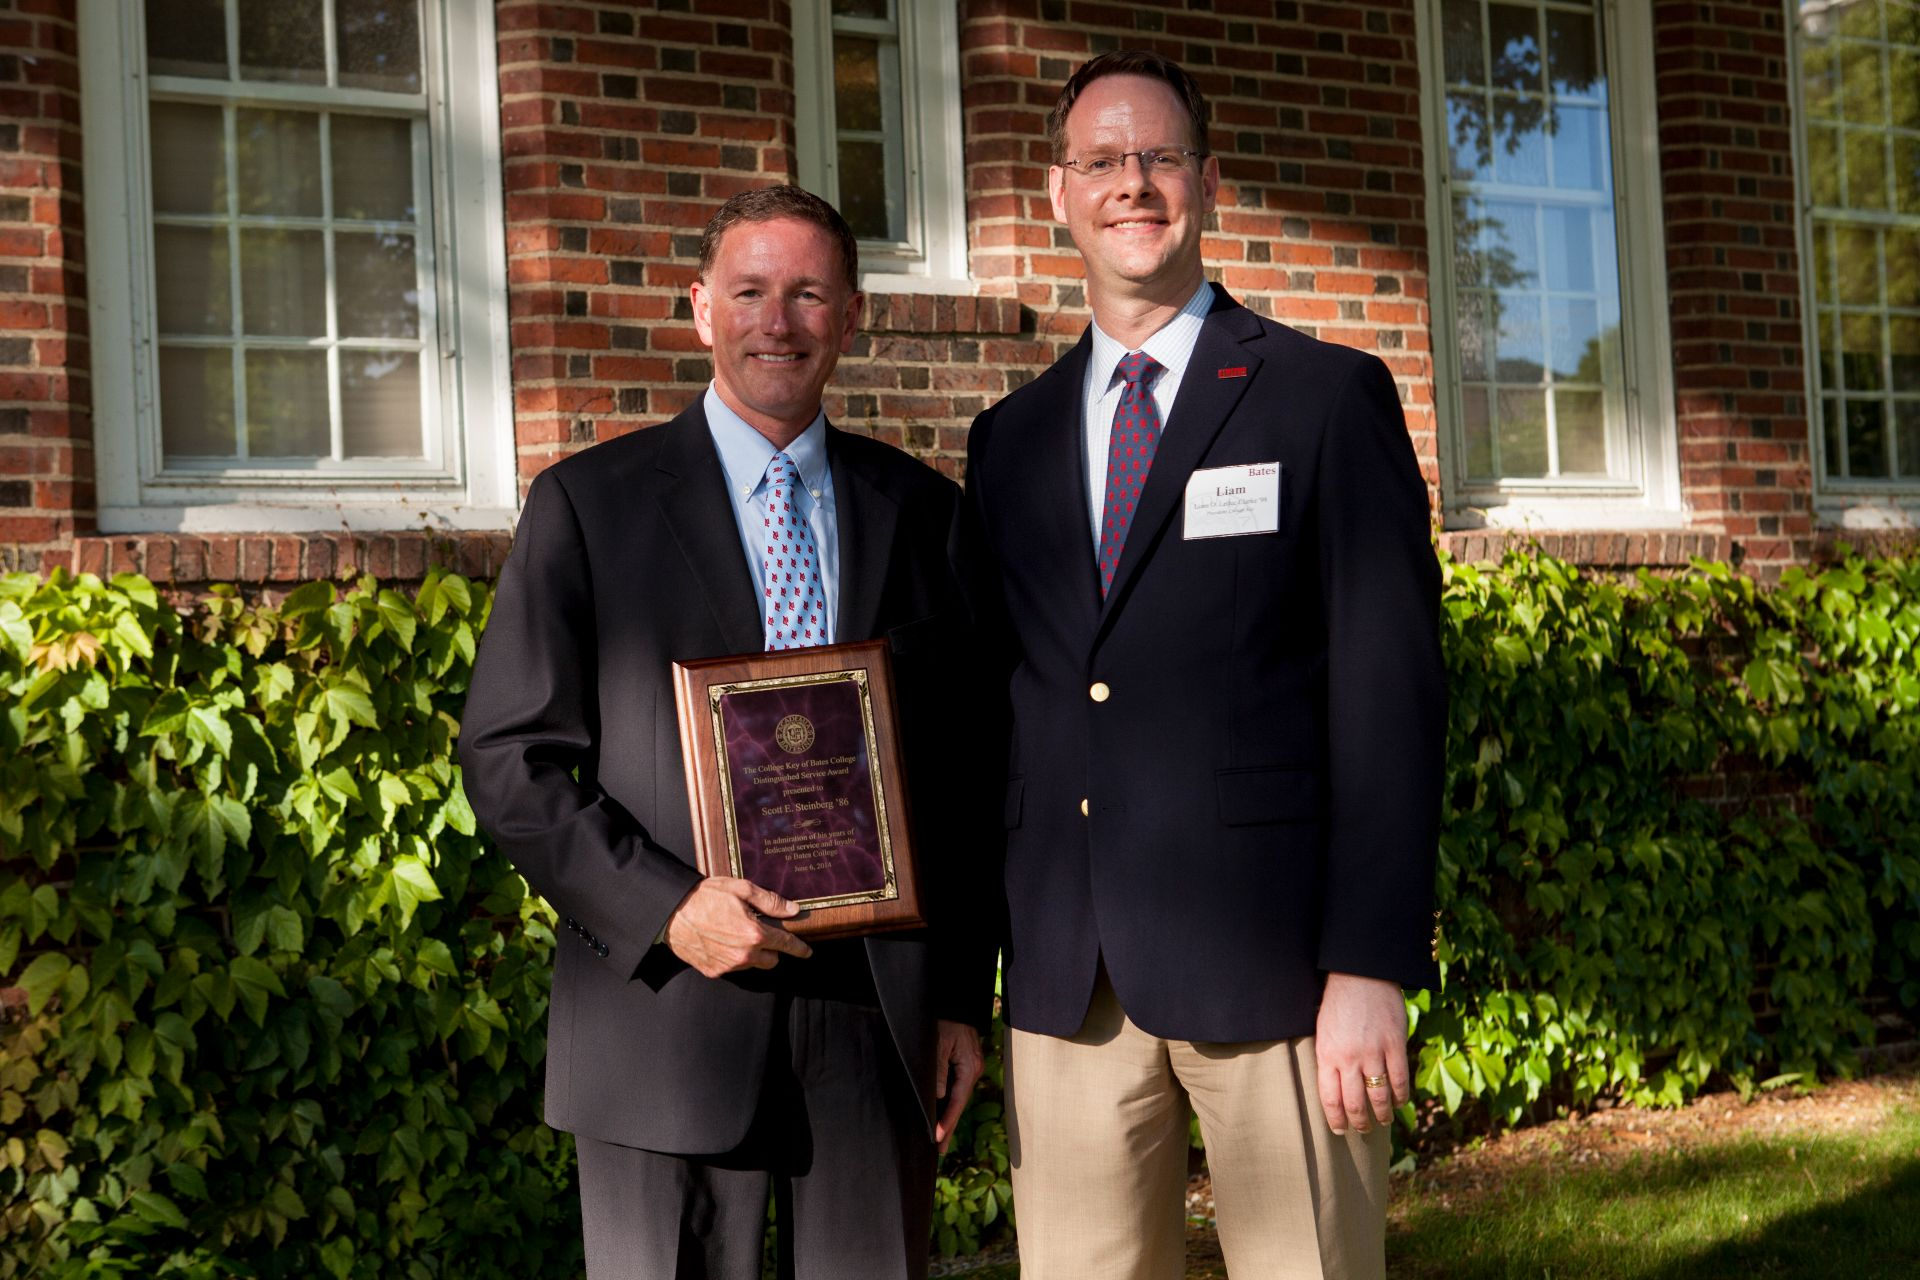 Scott Steinberg '86, left, with College Key president Liam Leduc Clark '98 on June 6. 2014. (Sarah Crosby/Bates College)